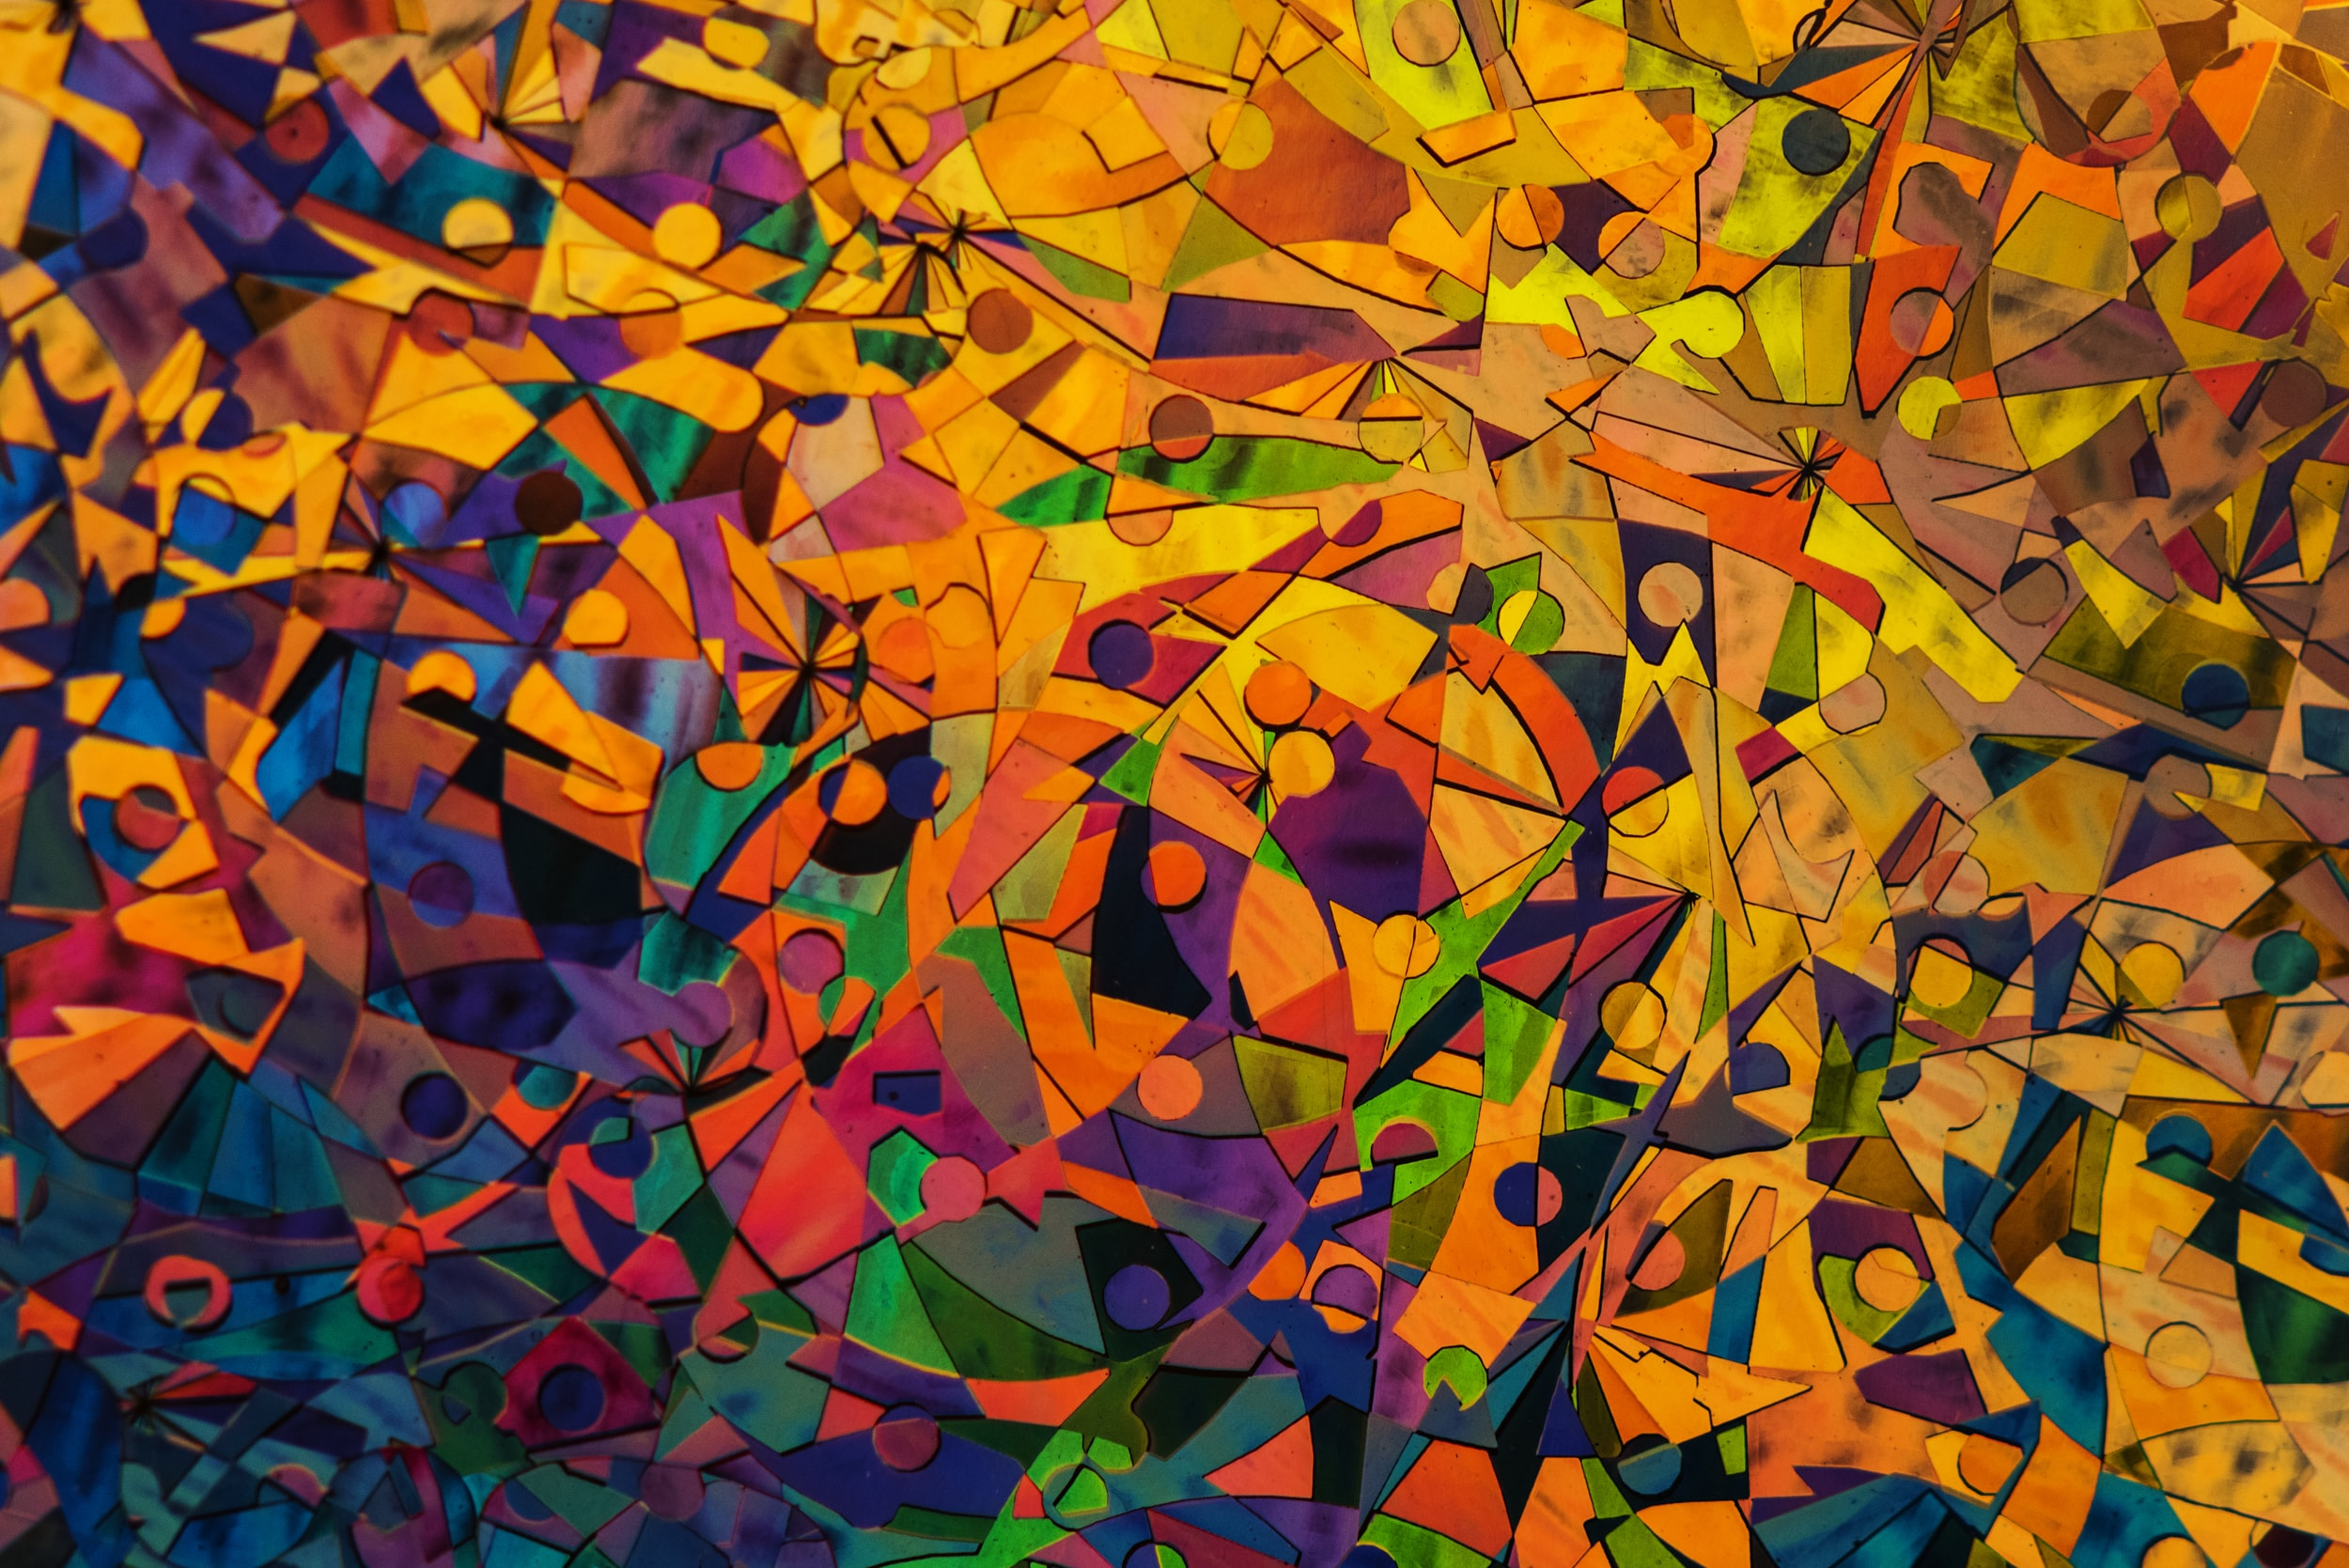 multicolored abstract painting of shapes